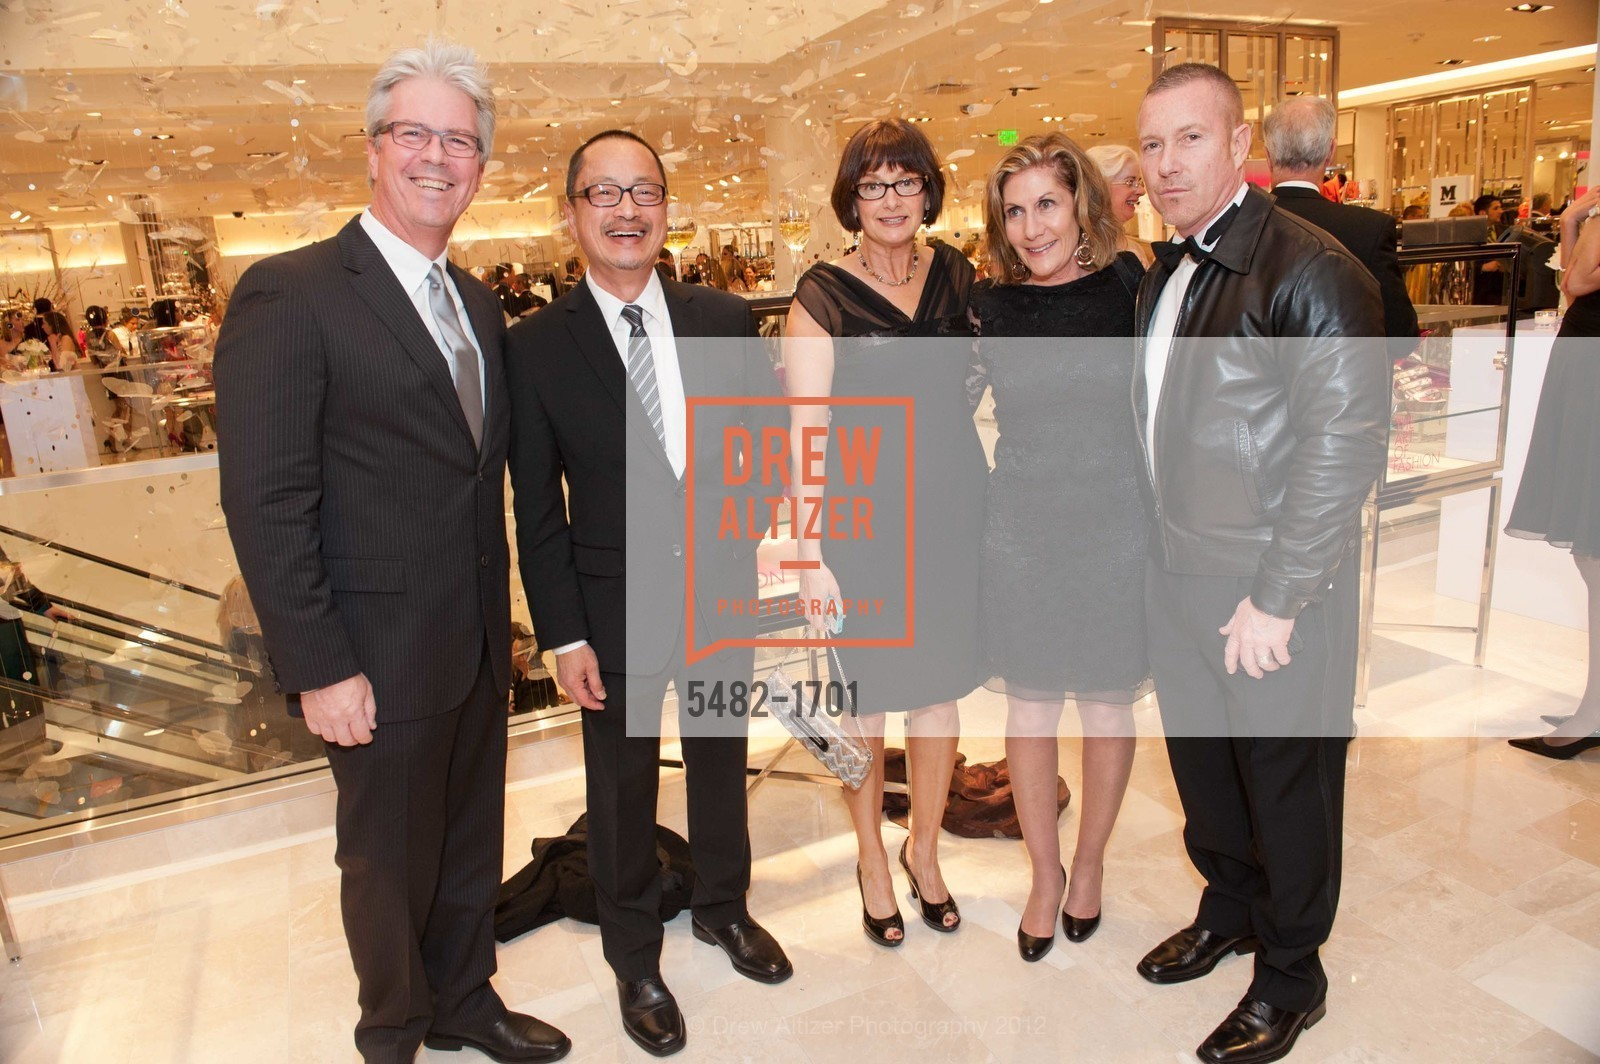 Steve Dolan, Steve Pon, Harry Lederer, Andrea Schwartz, Mitch Jones, Photo #5482-1701